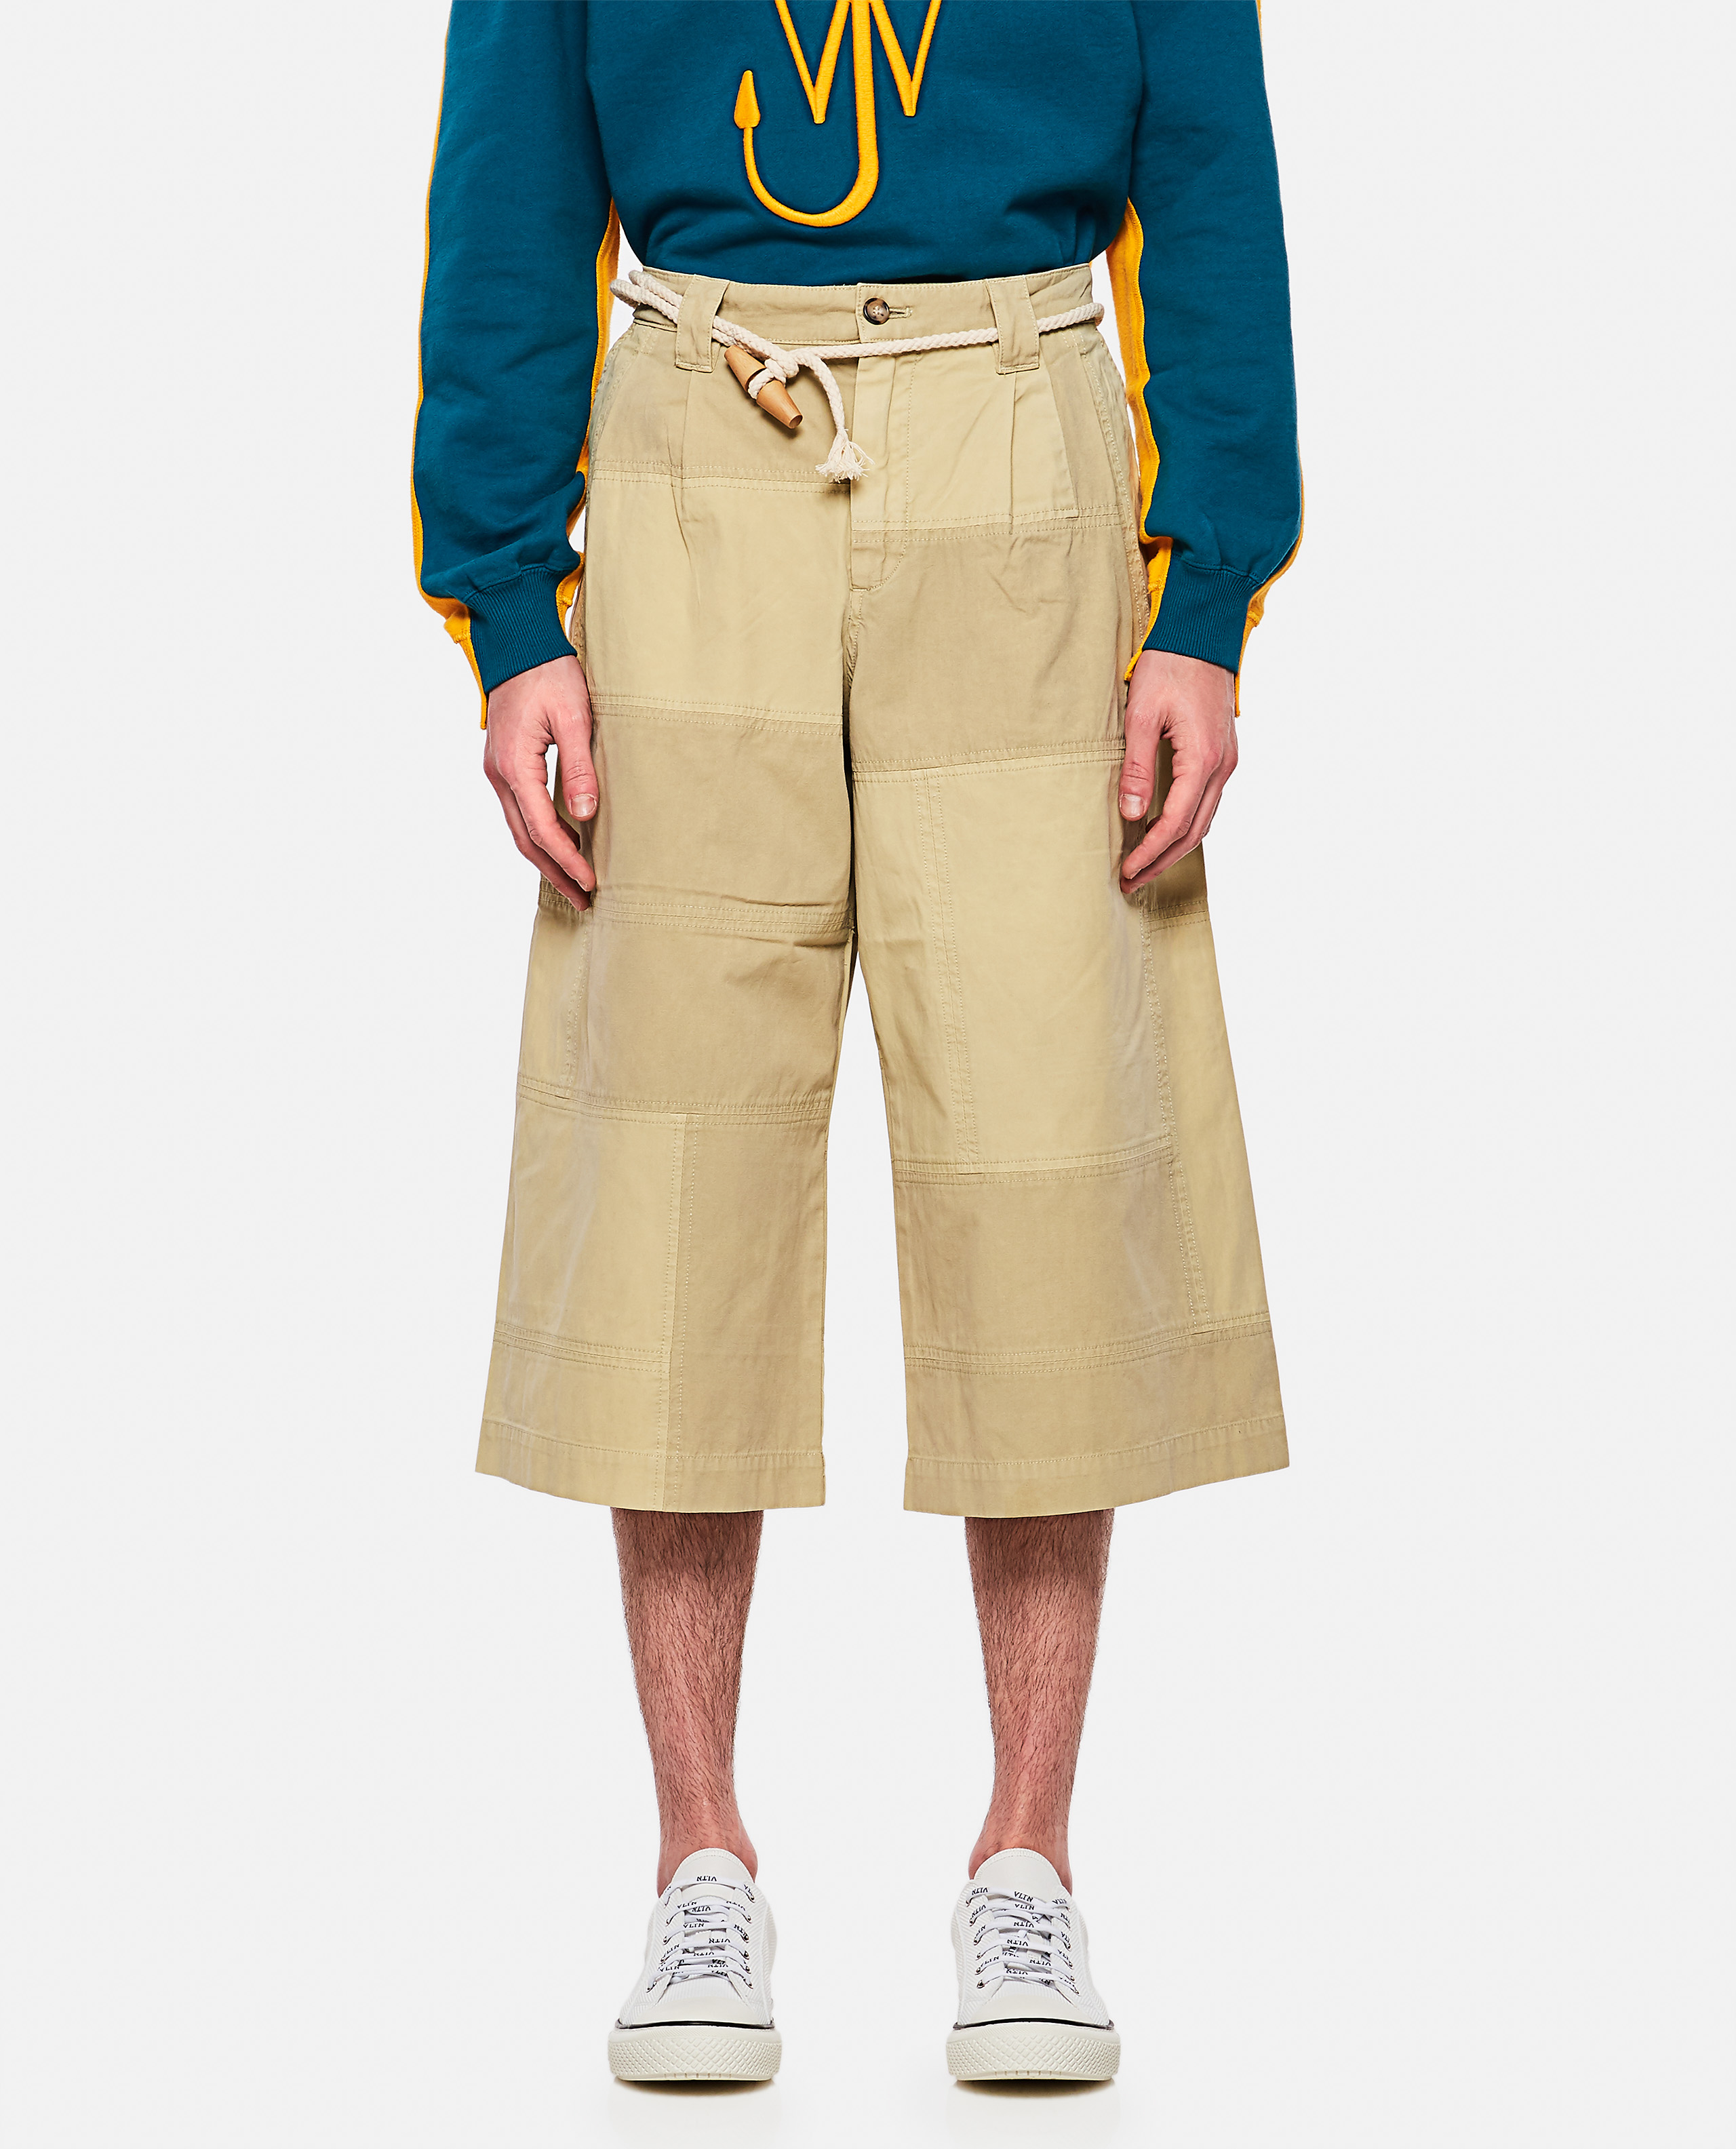 Jw Anderson Pajamas J.W. ANDERSON PATCHWORK CROPPED TROUSERS